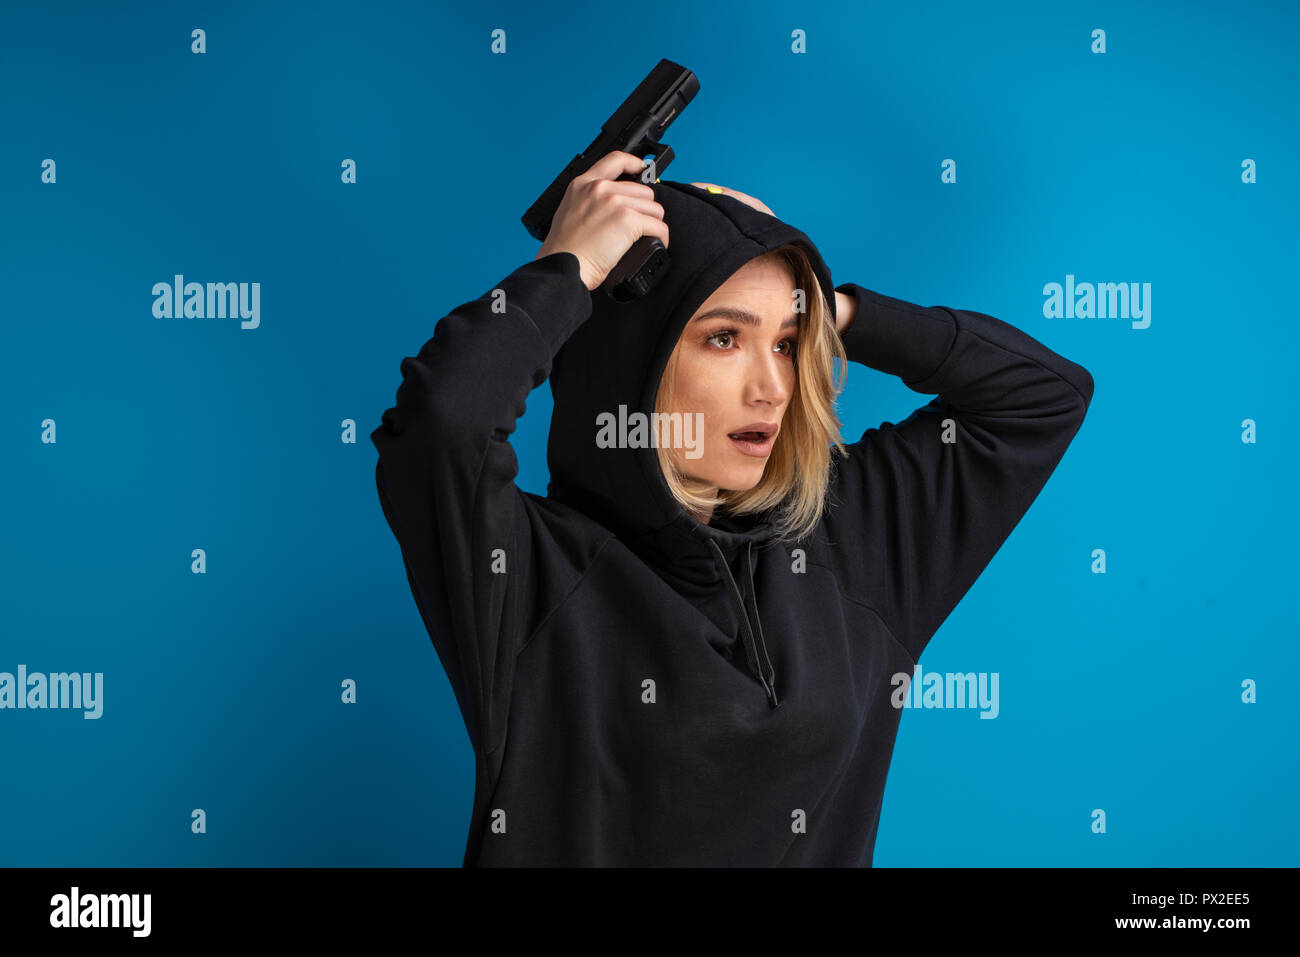 Portrait of hooded girl looking shocked while holding her hands with gun up on the head. Shot against blue background Stock Photo